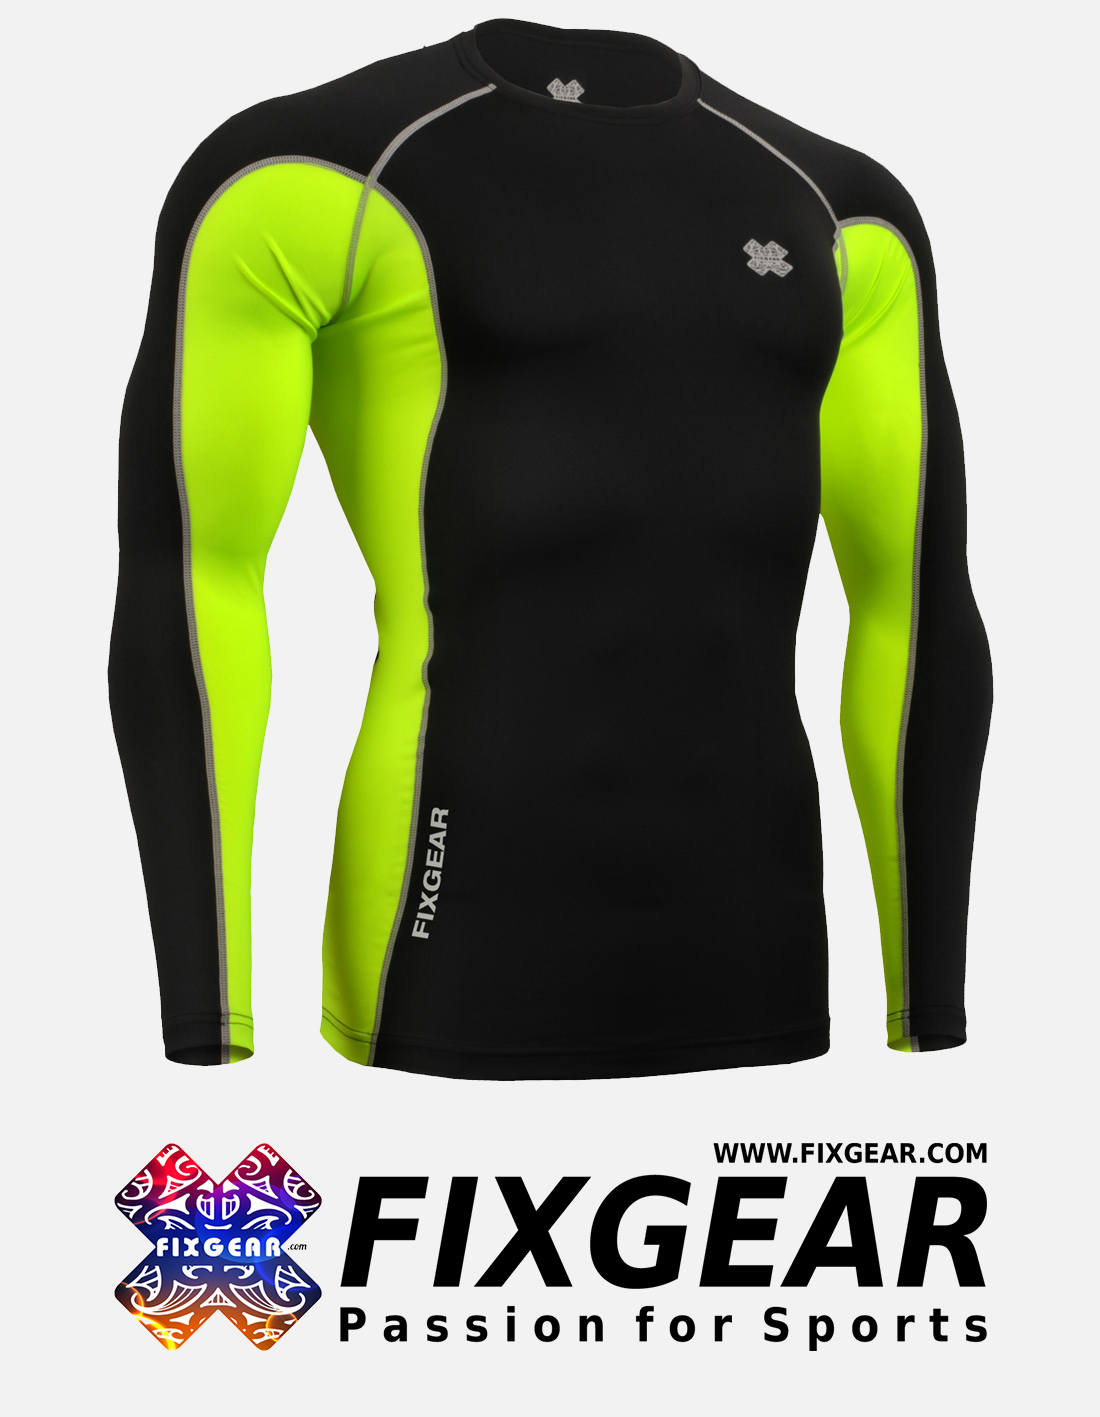 FIXGEAR FCT-BGL Skin-tight Compression Base Layer Shirt